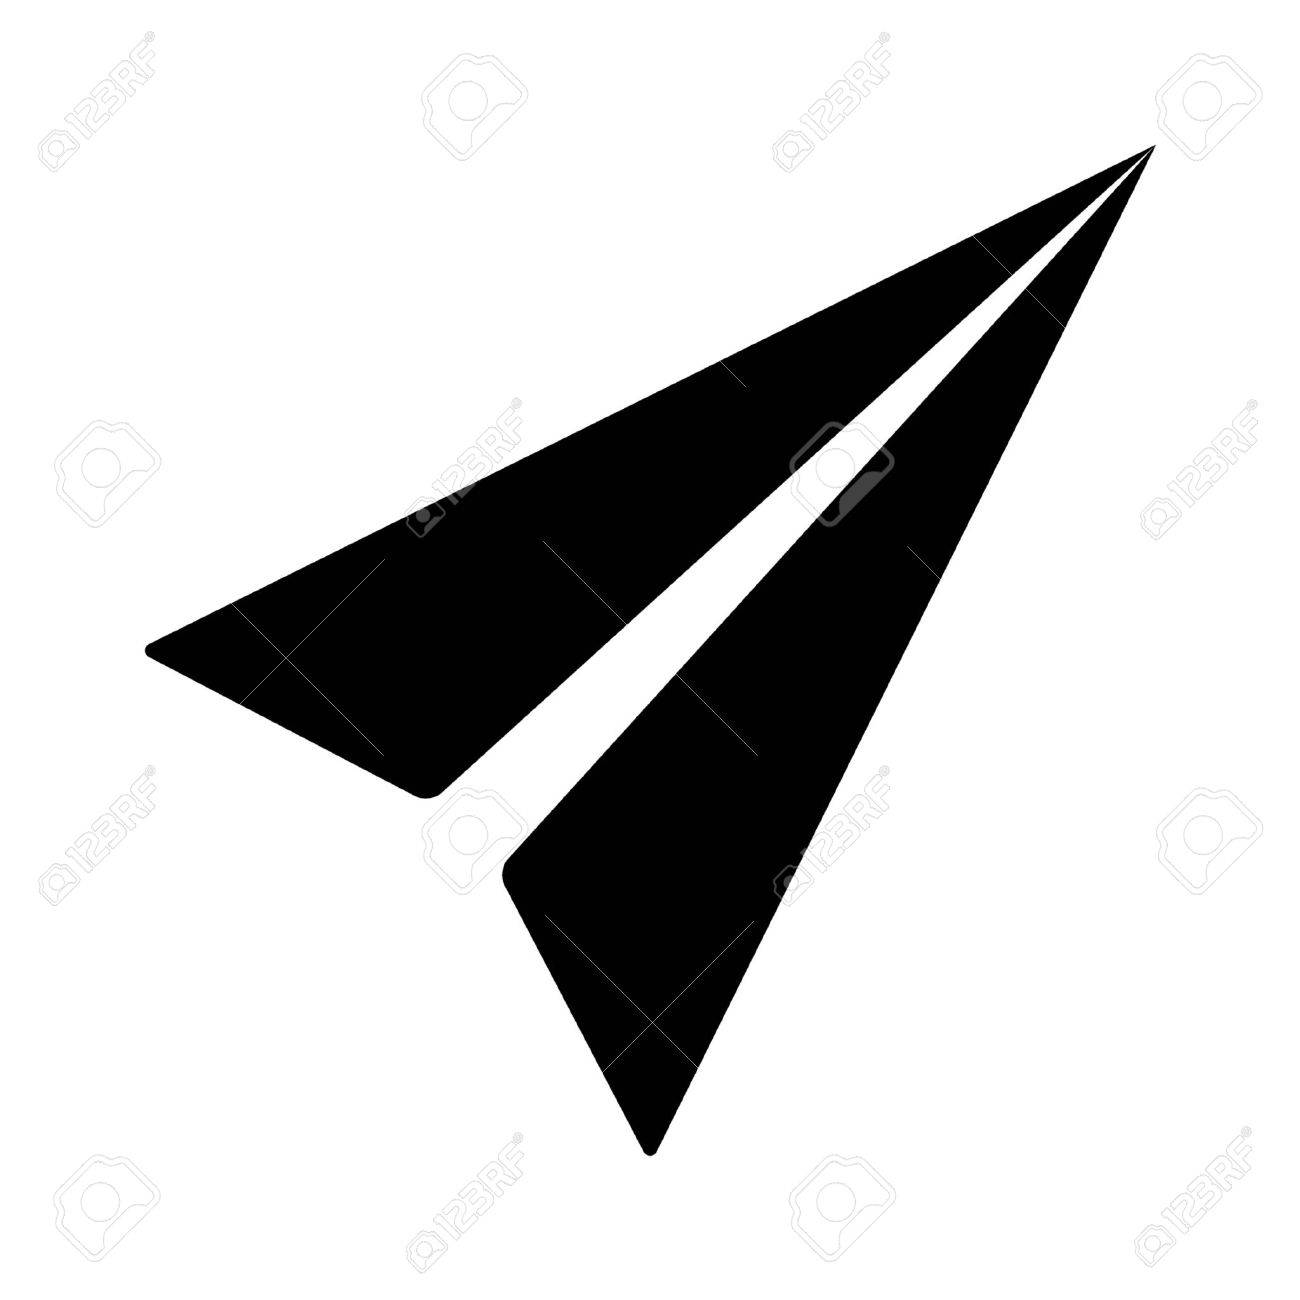 mail paper airplane flat icon for apps and websites royalty free rh 123rf com paper airplane vector free paper airplane vector freepik